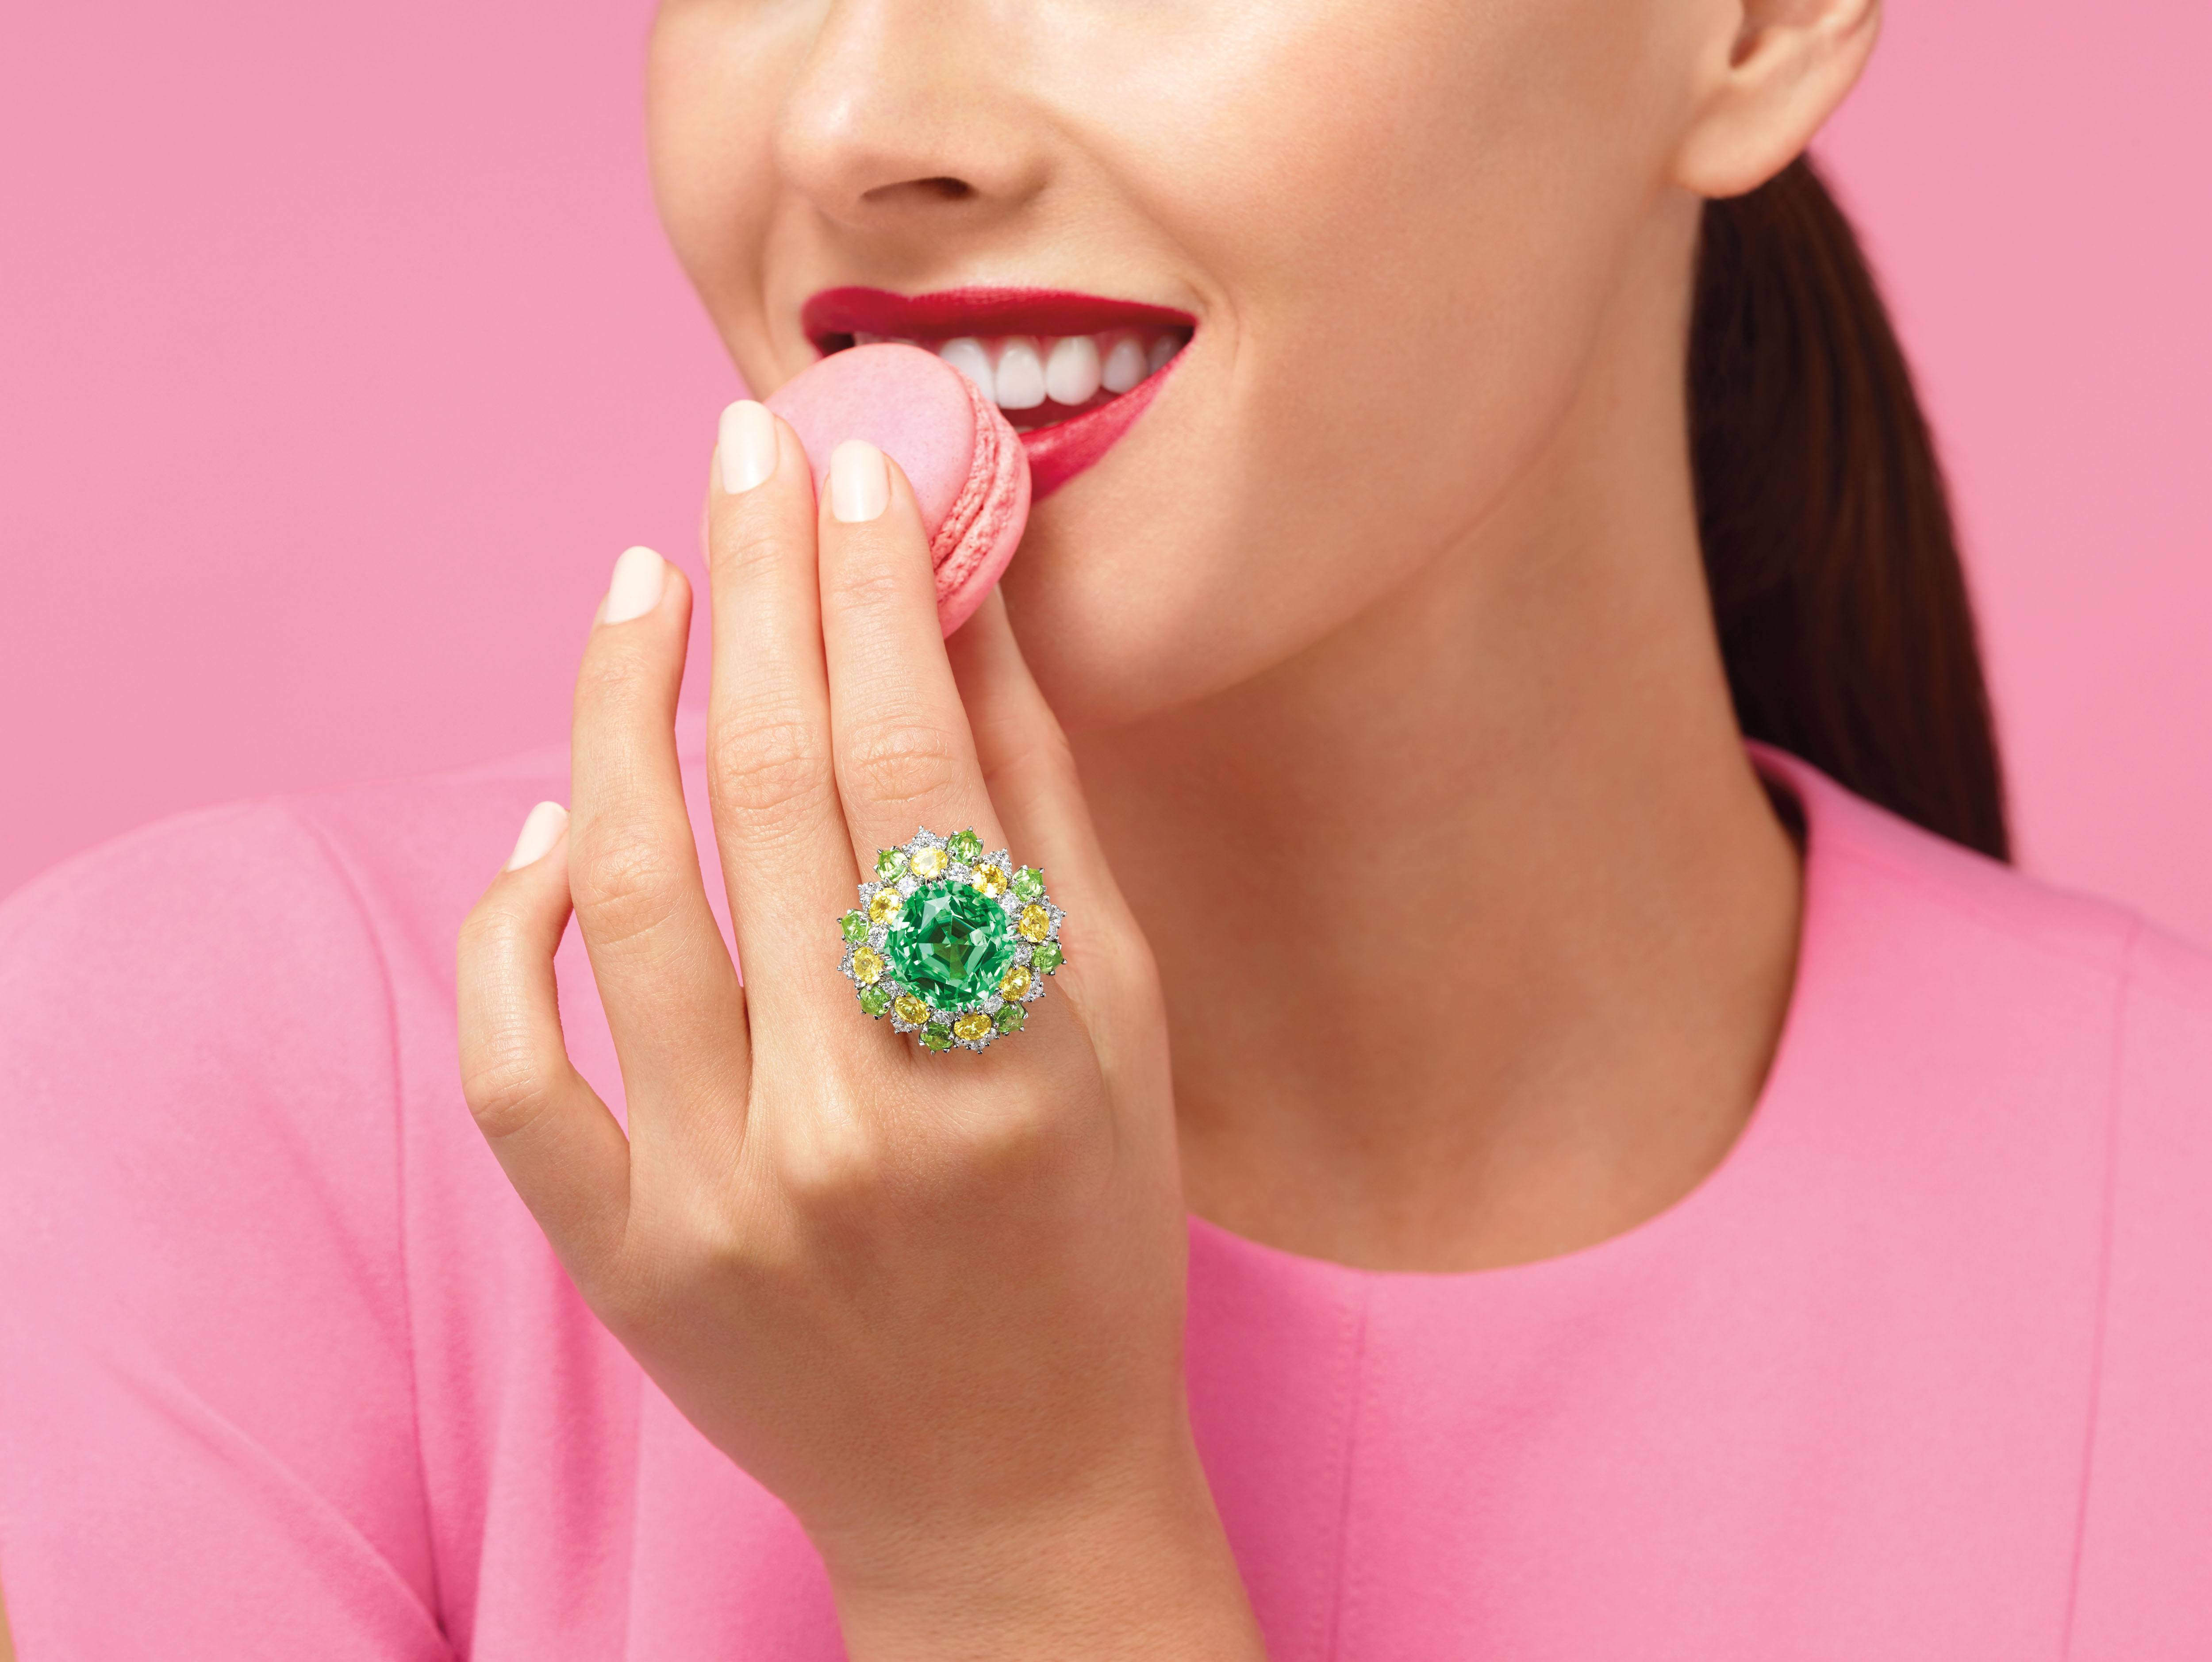 Model wearing the limited edition Harry Winston Green Tourmaline Ring with Yellow Sapphires, Peridots and Diamonds from the Candy Collection